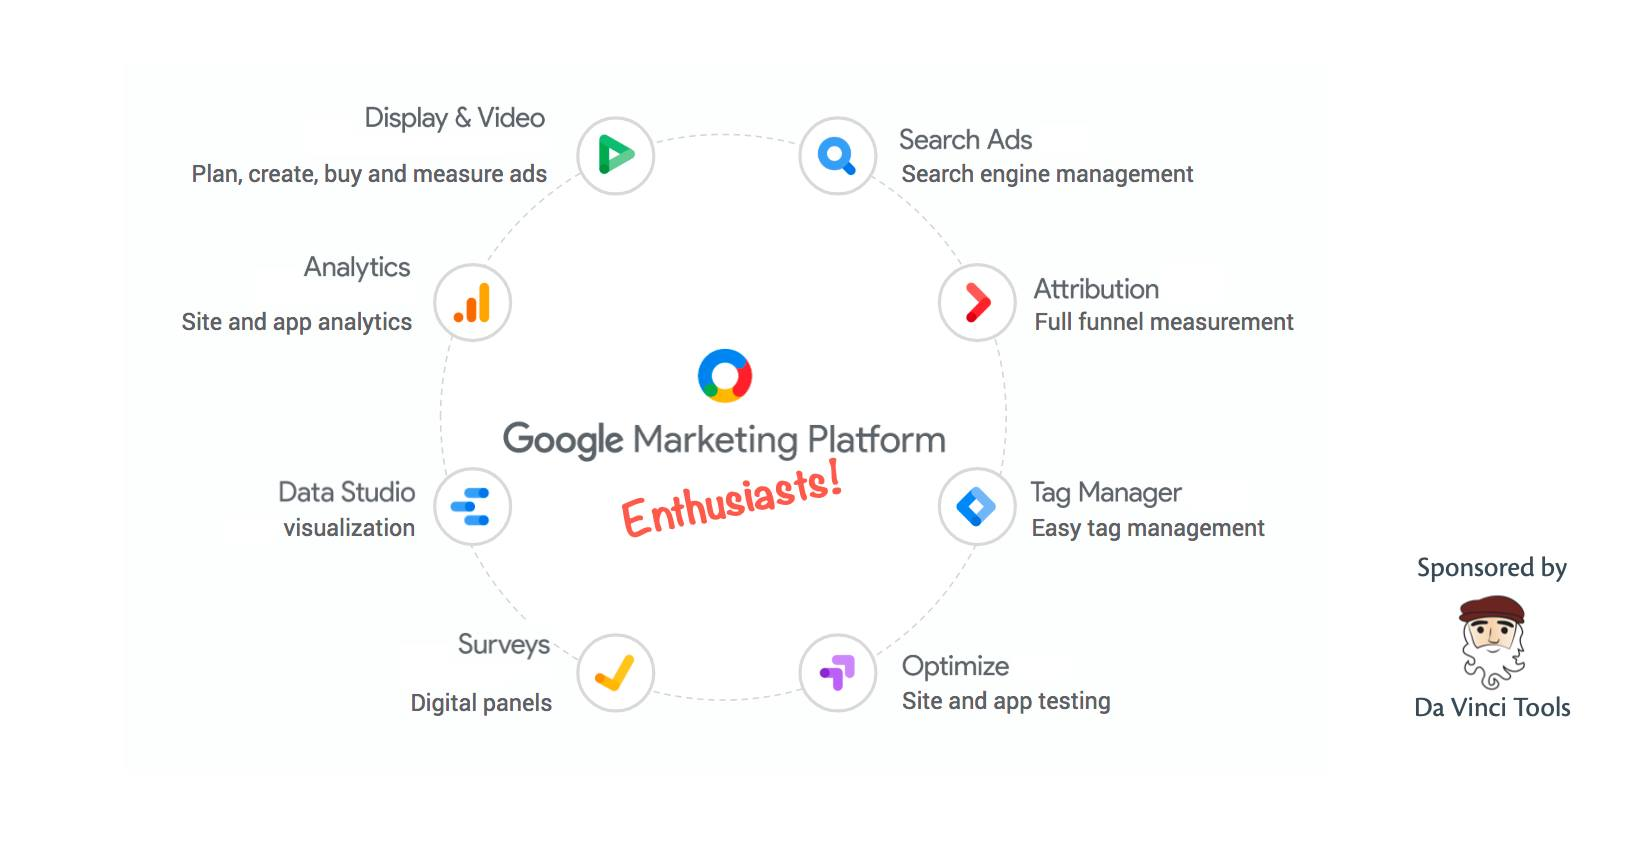 Google Marketing Platform Facebook Group